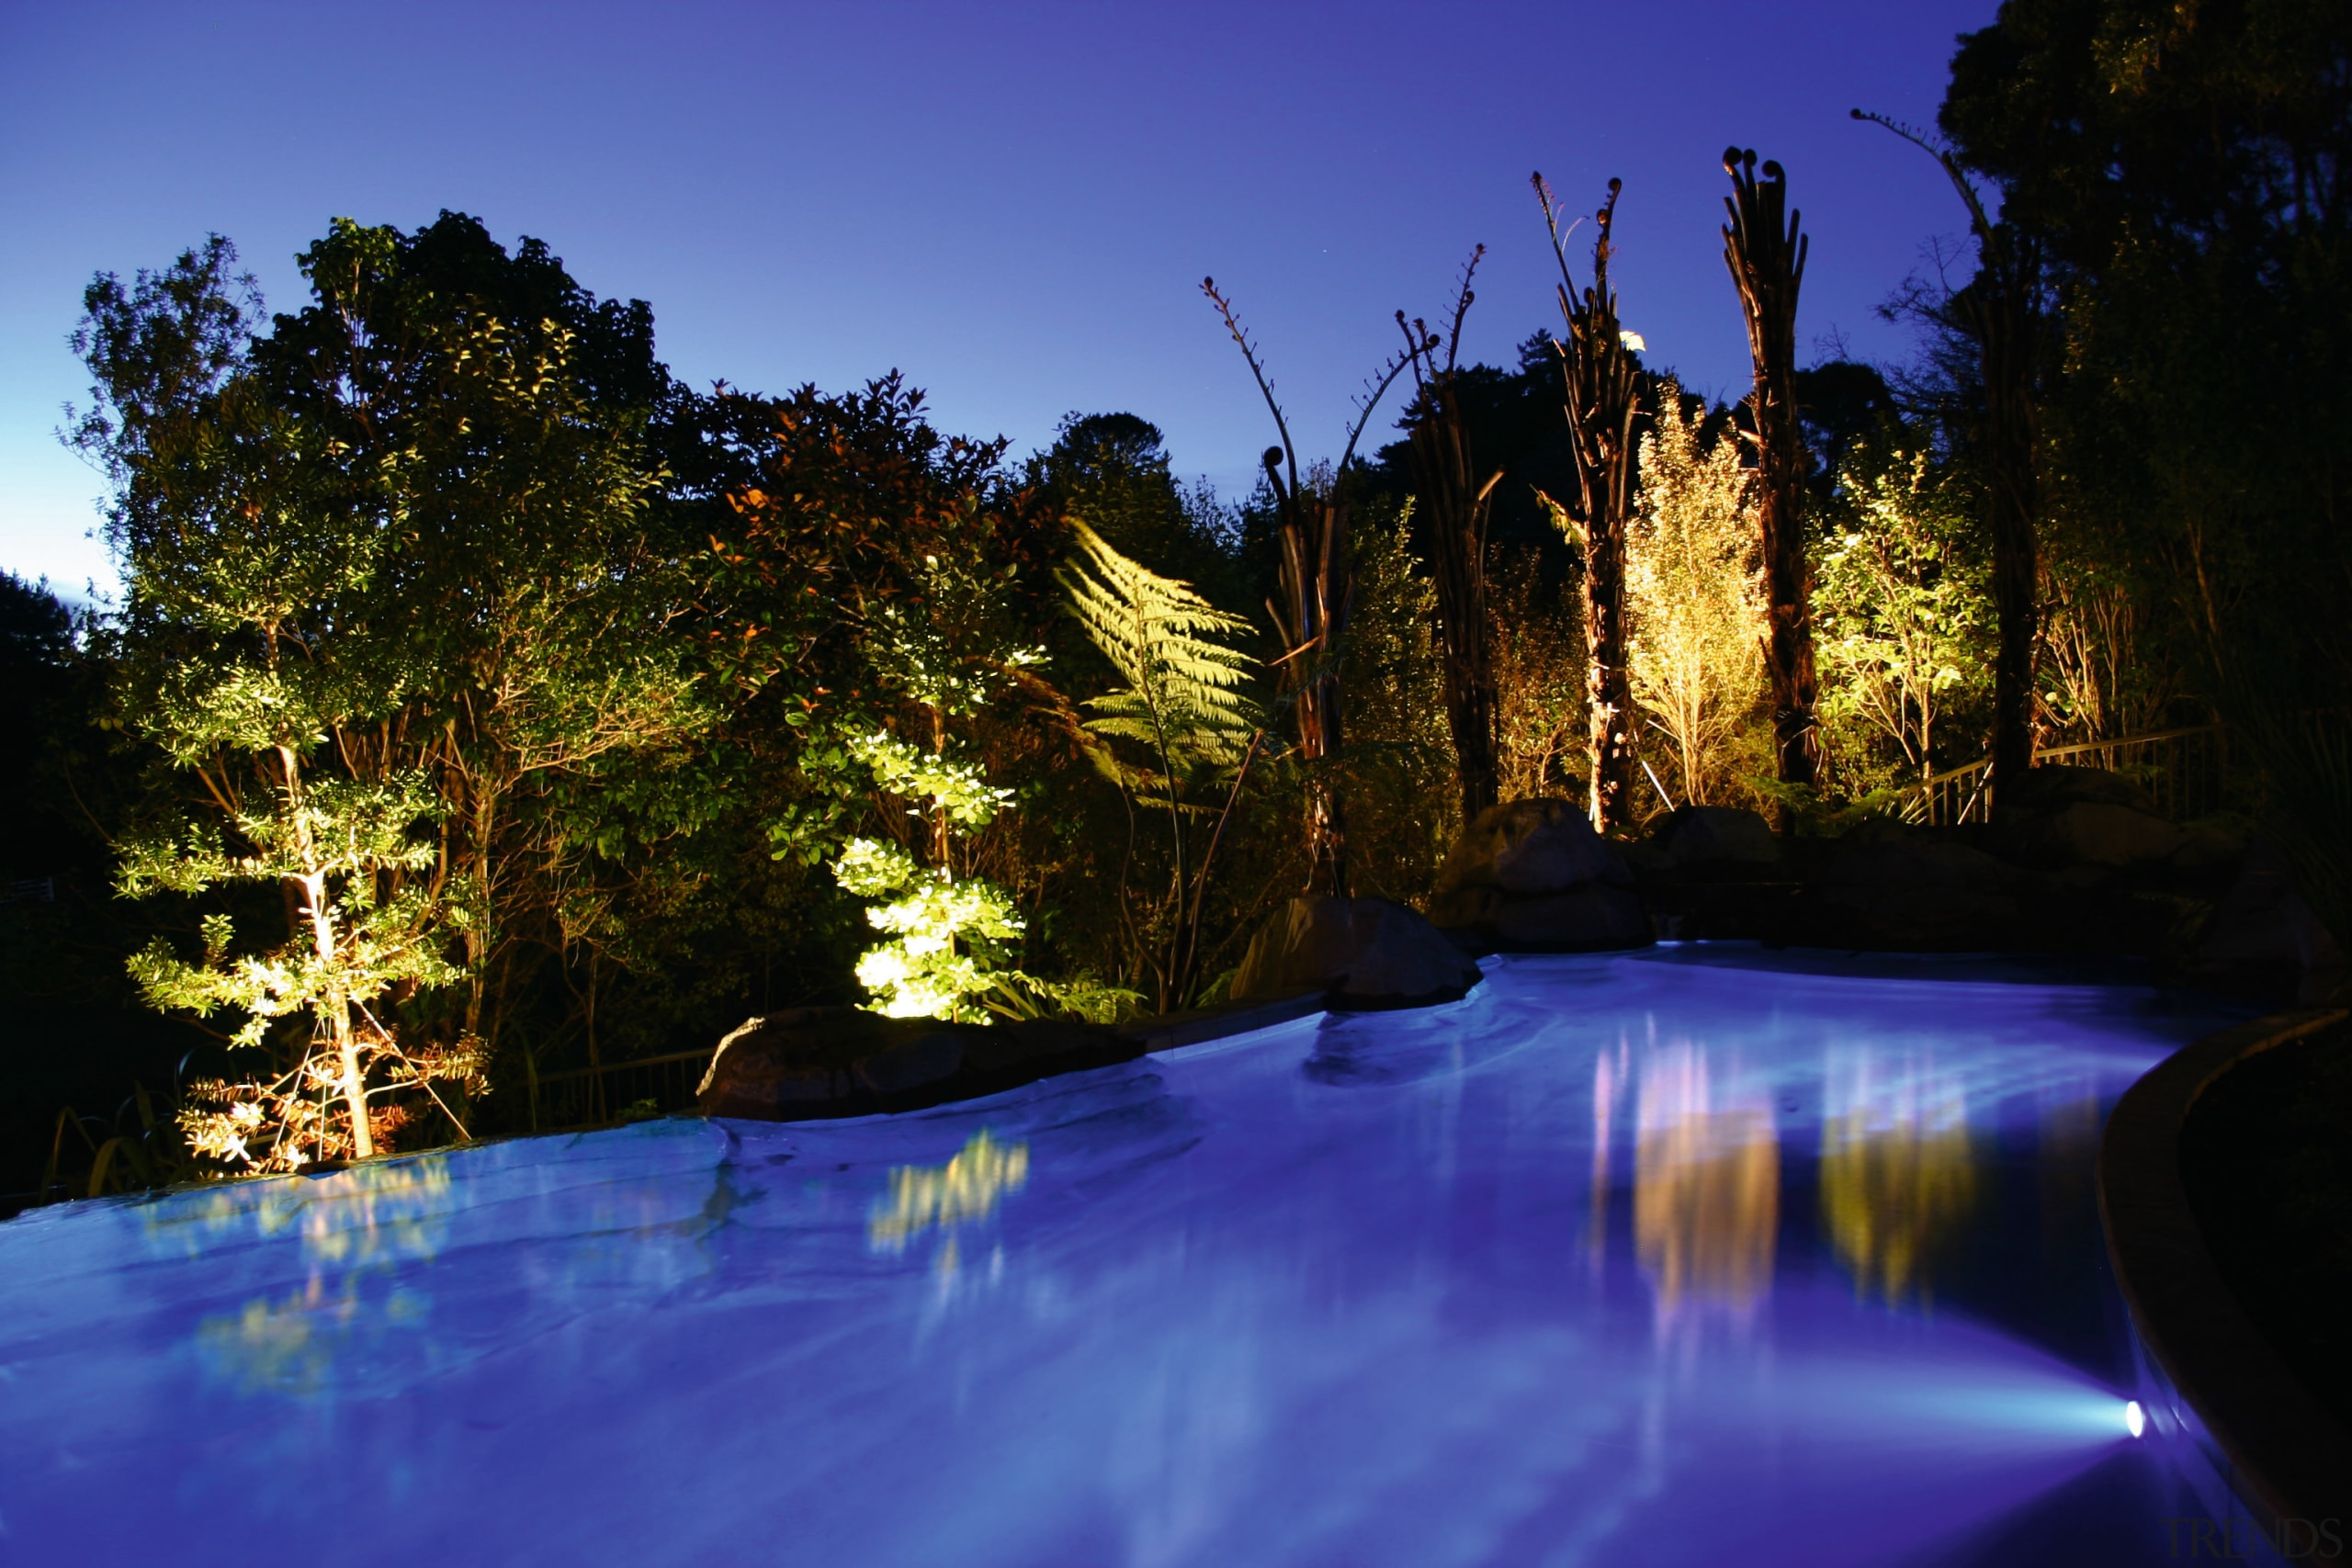 Outdoor pool with blue lighting and trees lit body of water, evening, lake, landscape, landscape lighting, light, lighting, nature, night, reflection, river, sky, tree, water, water feature, watercourse, wilderness, blue